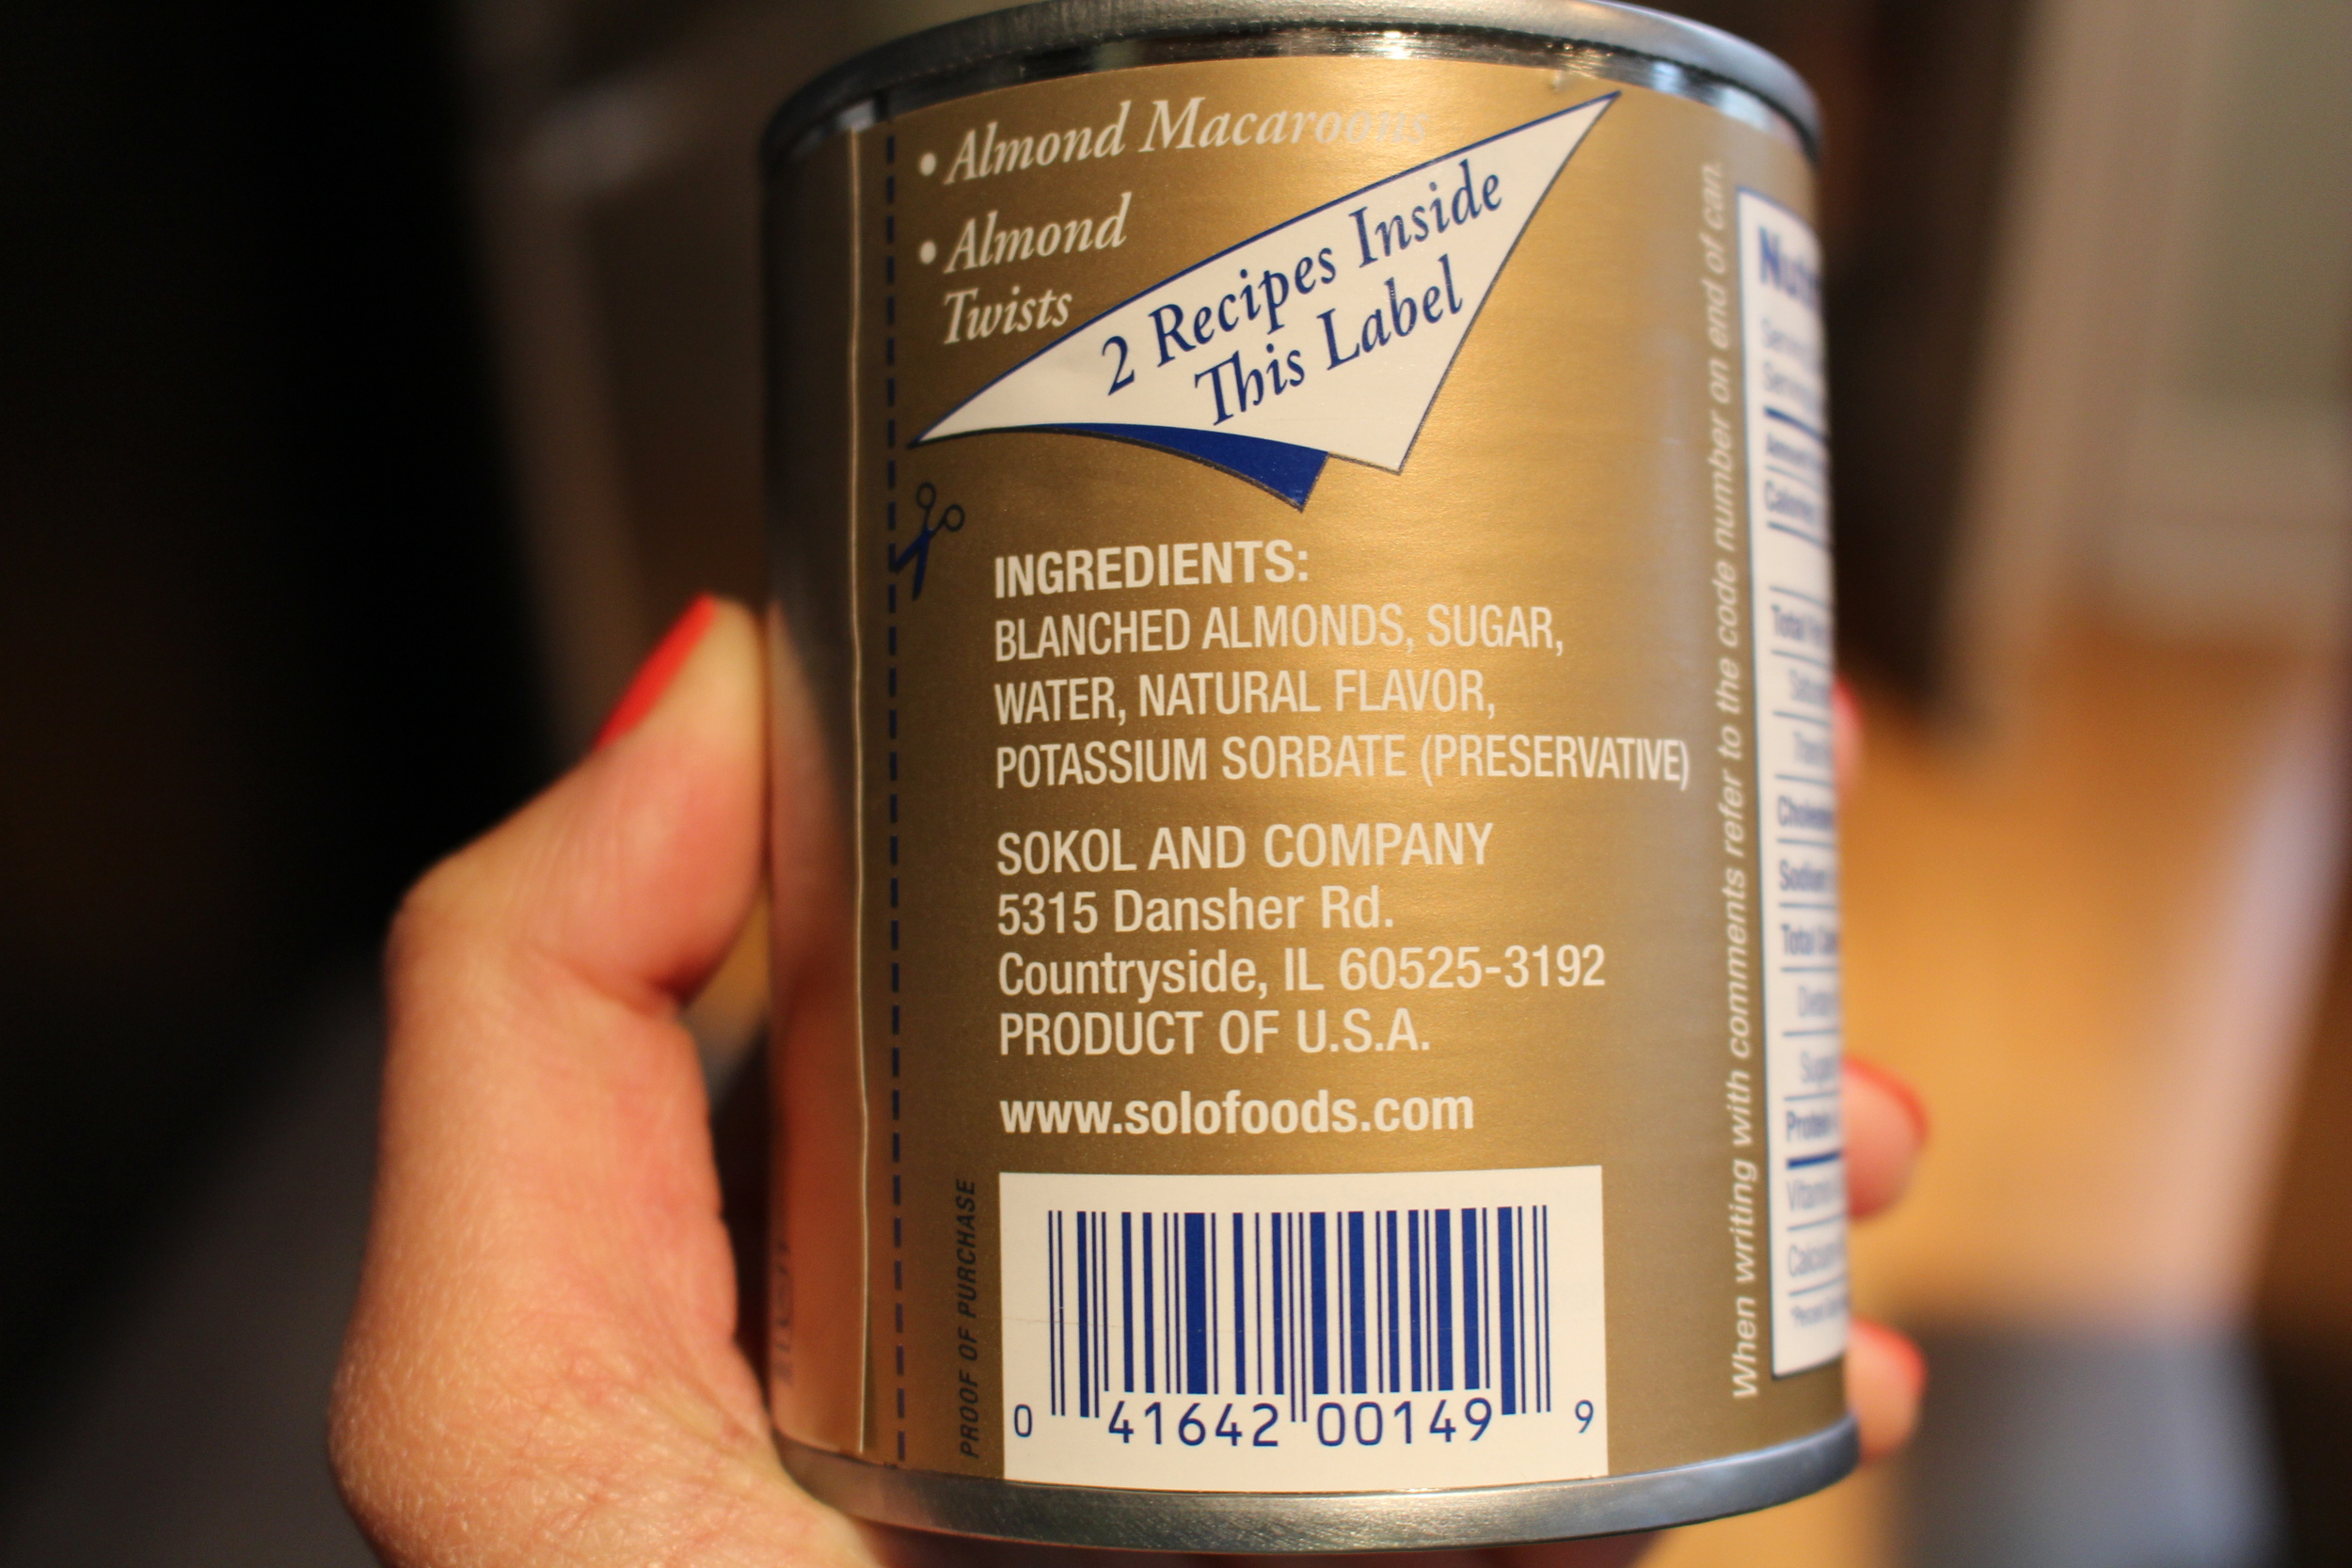 In case you're wondering what exactly Almond paste is!